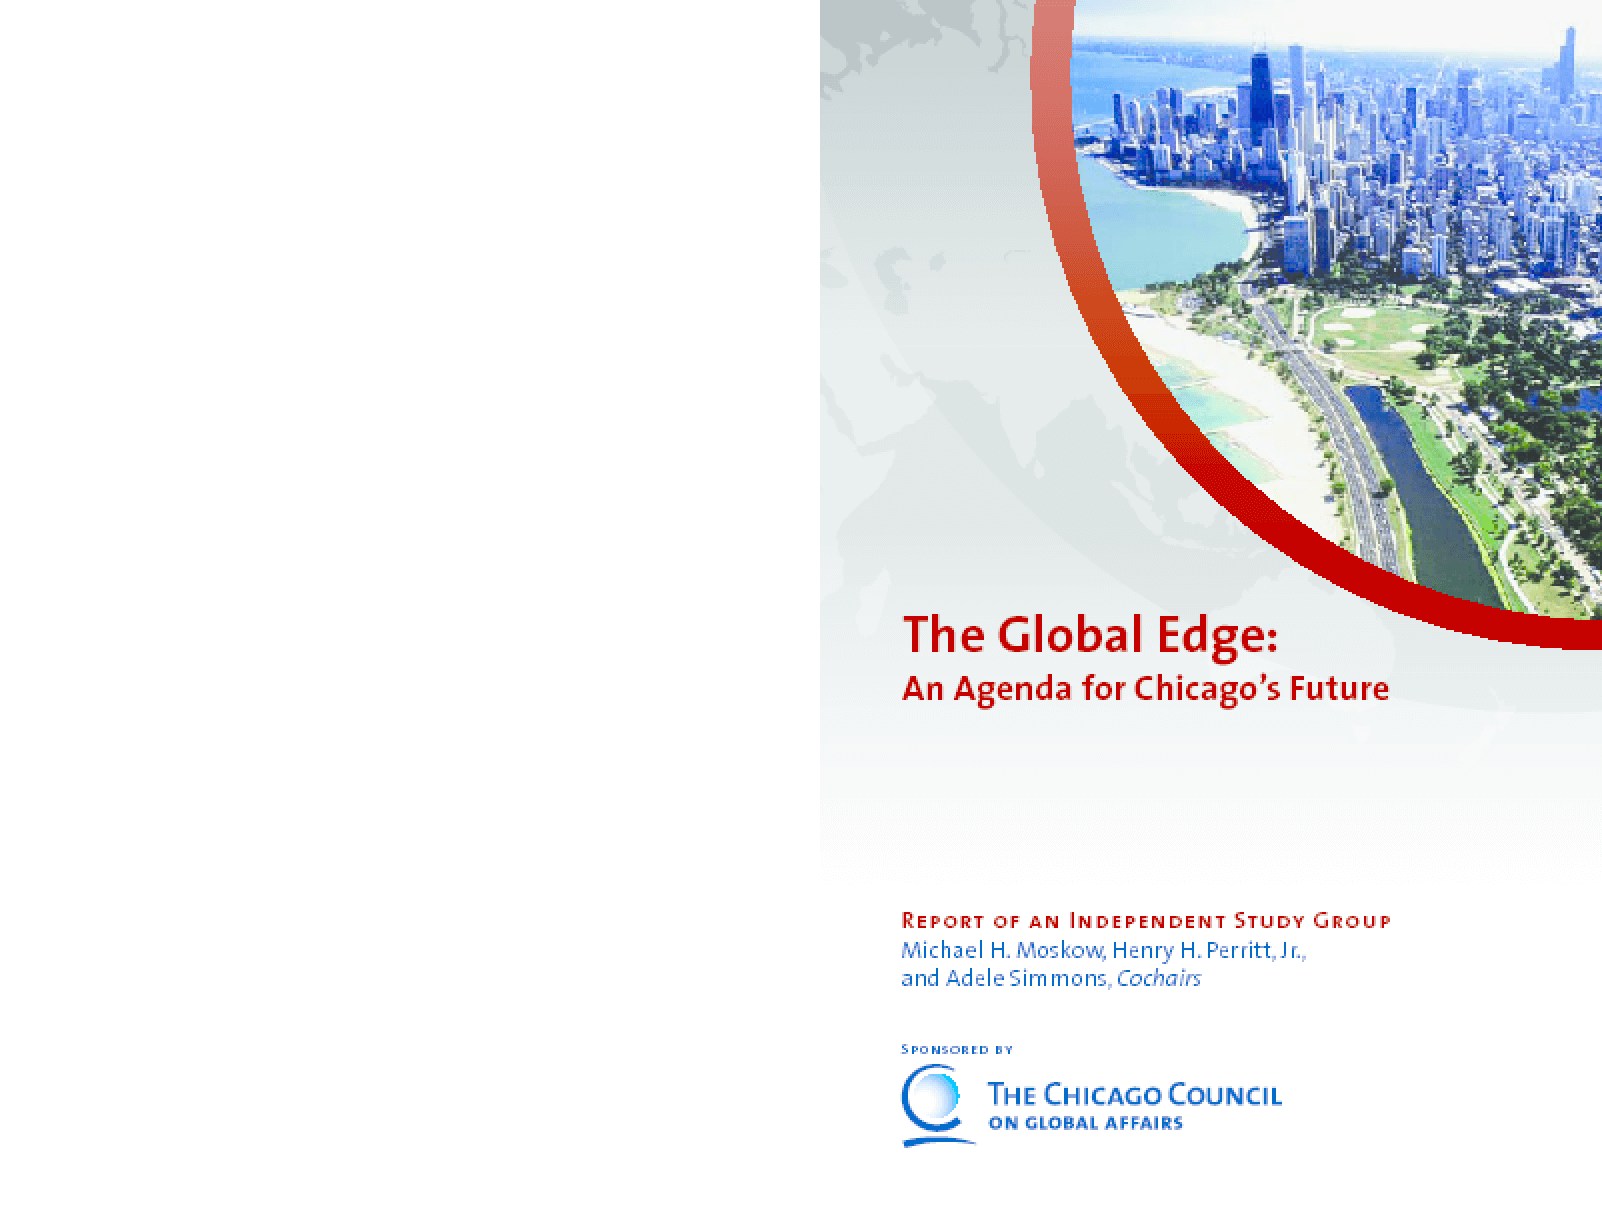 The Global Edge: An Agenda for Chicago's Future